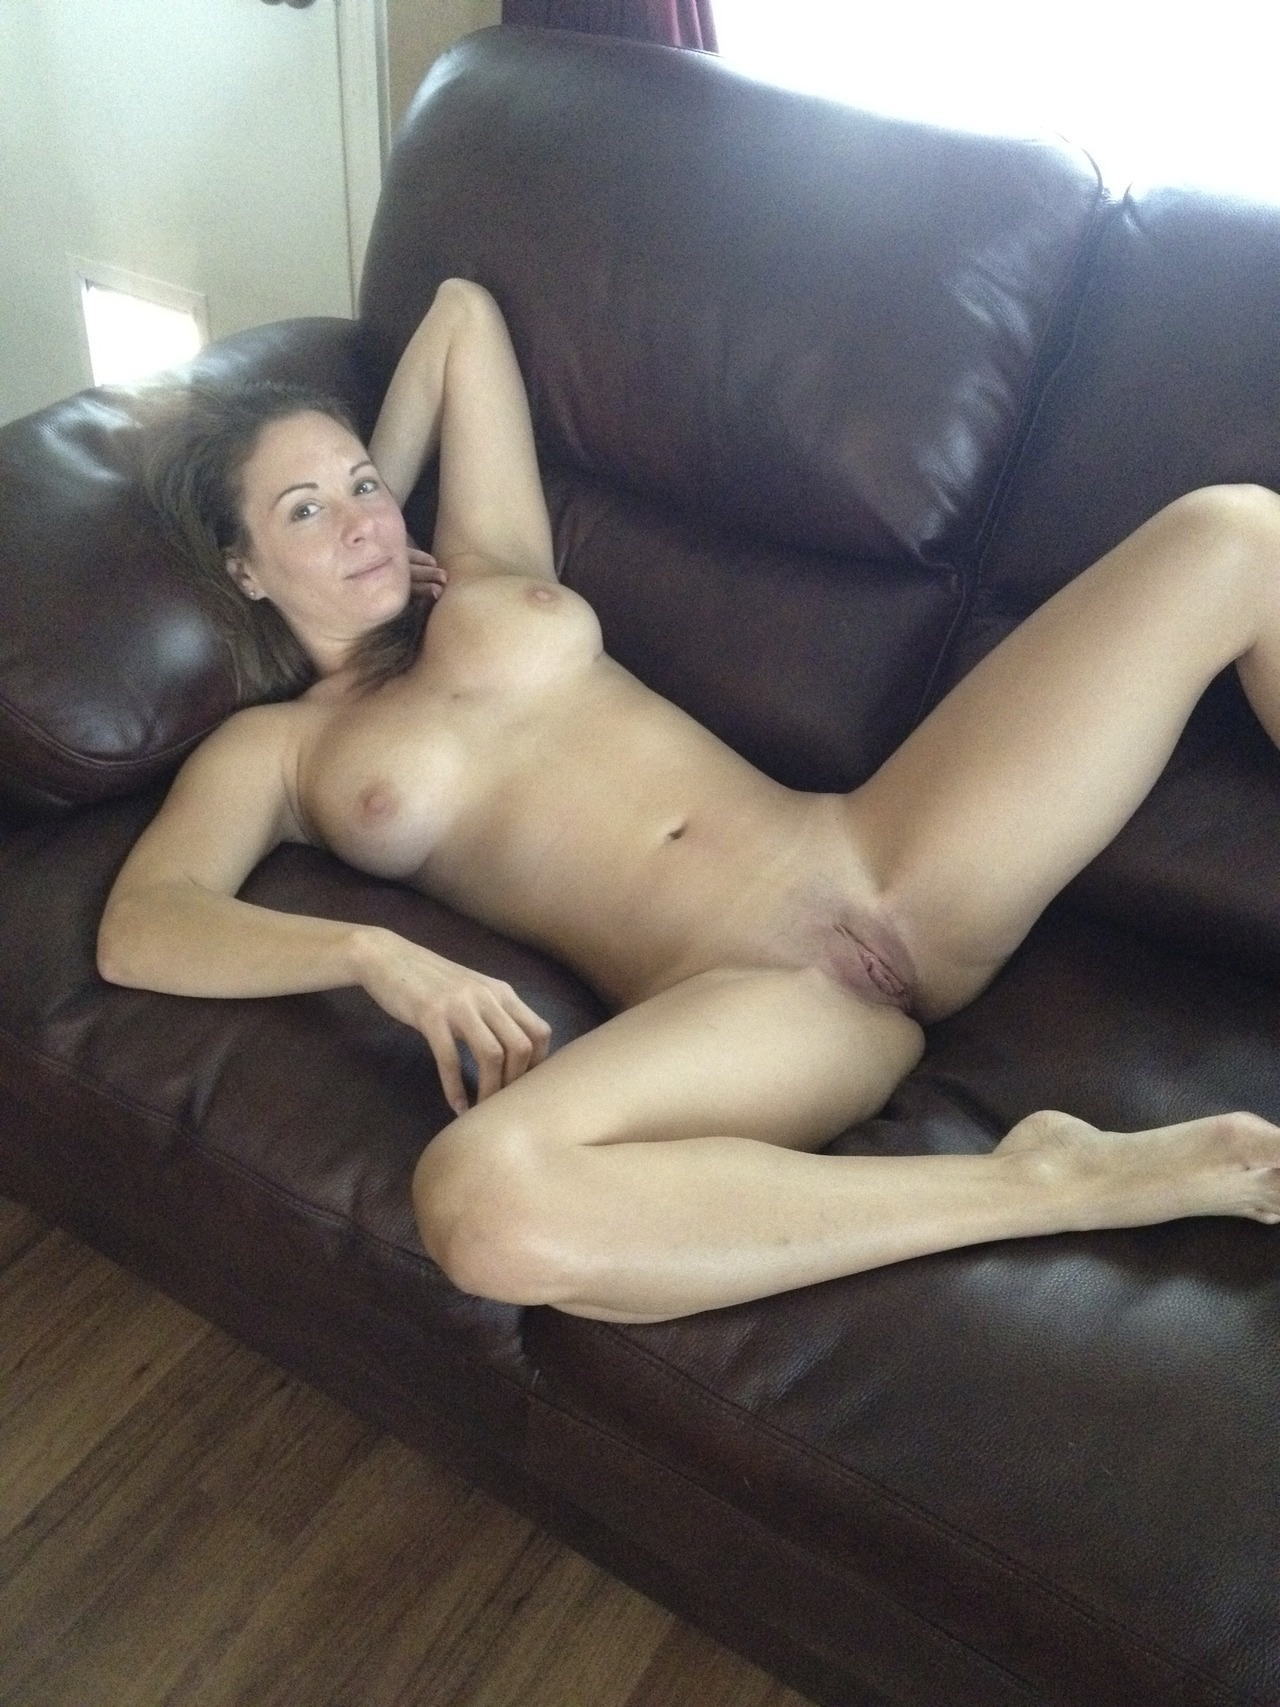 free pornstar kira queen images and galleries